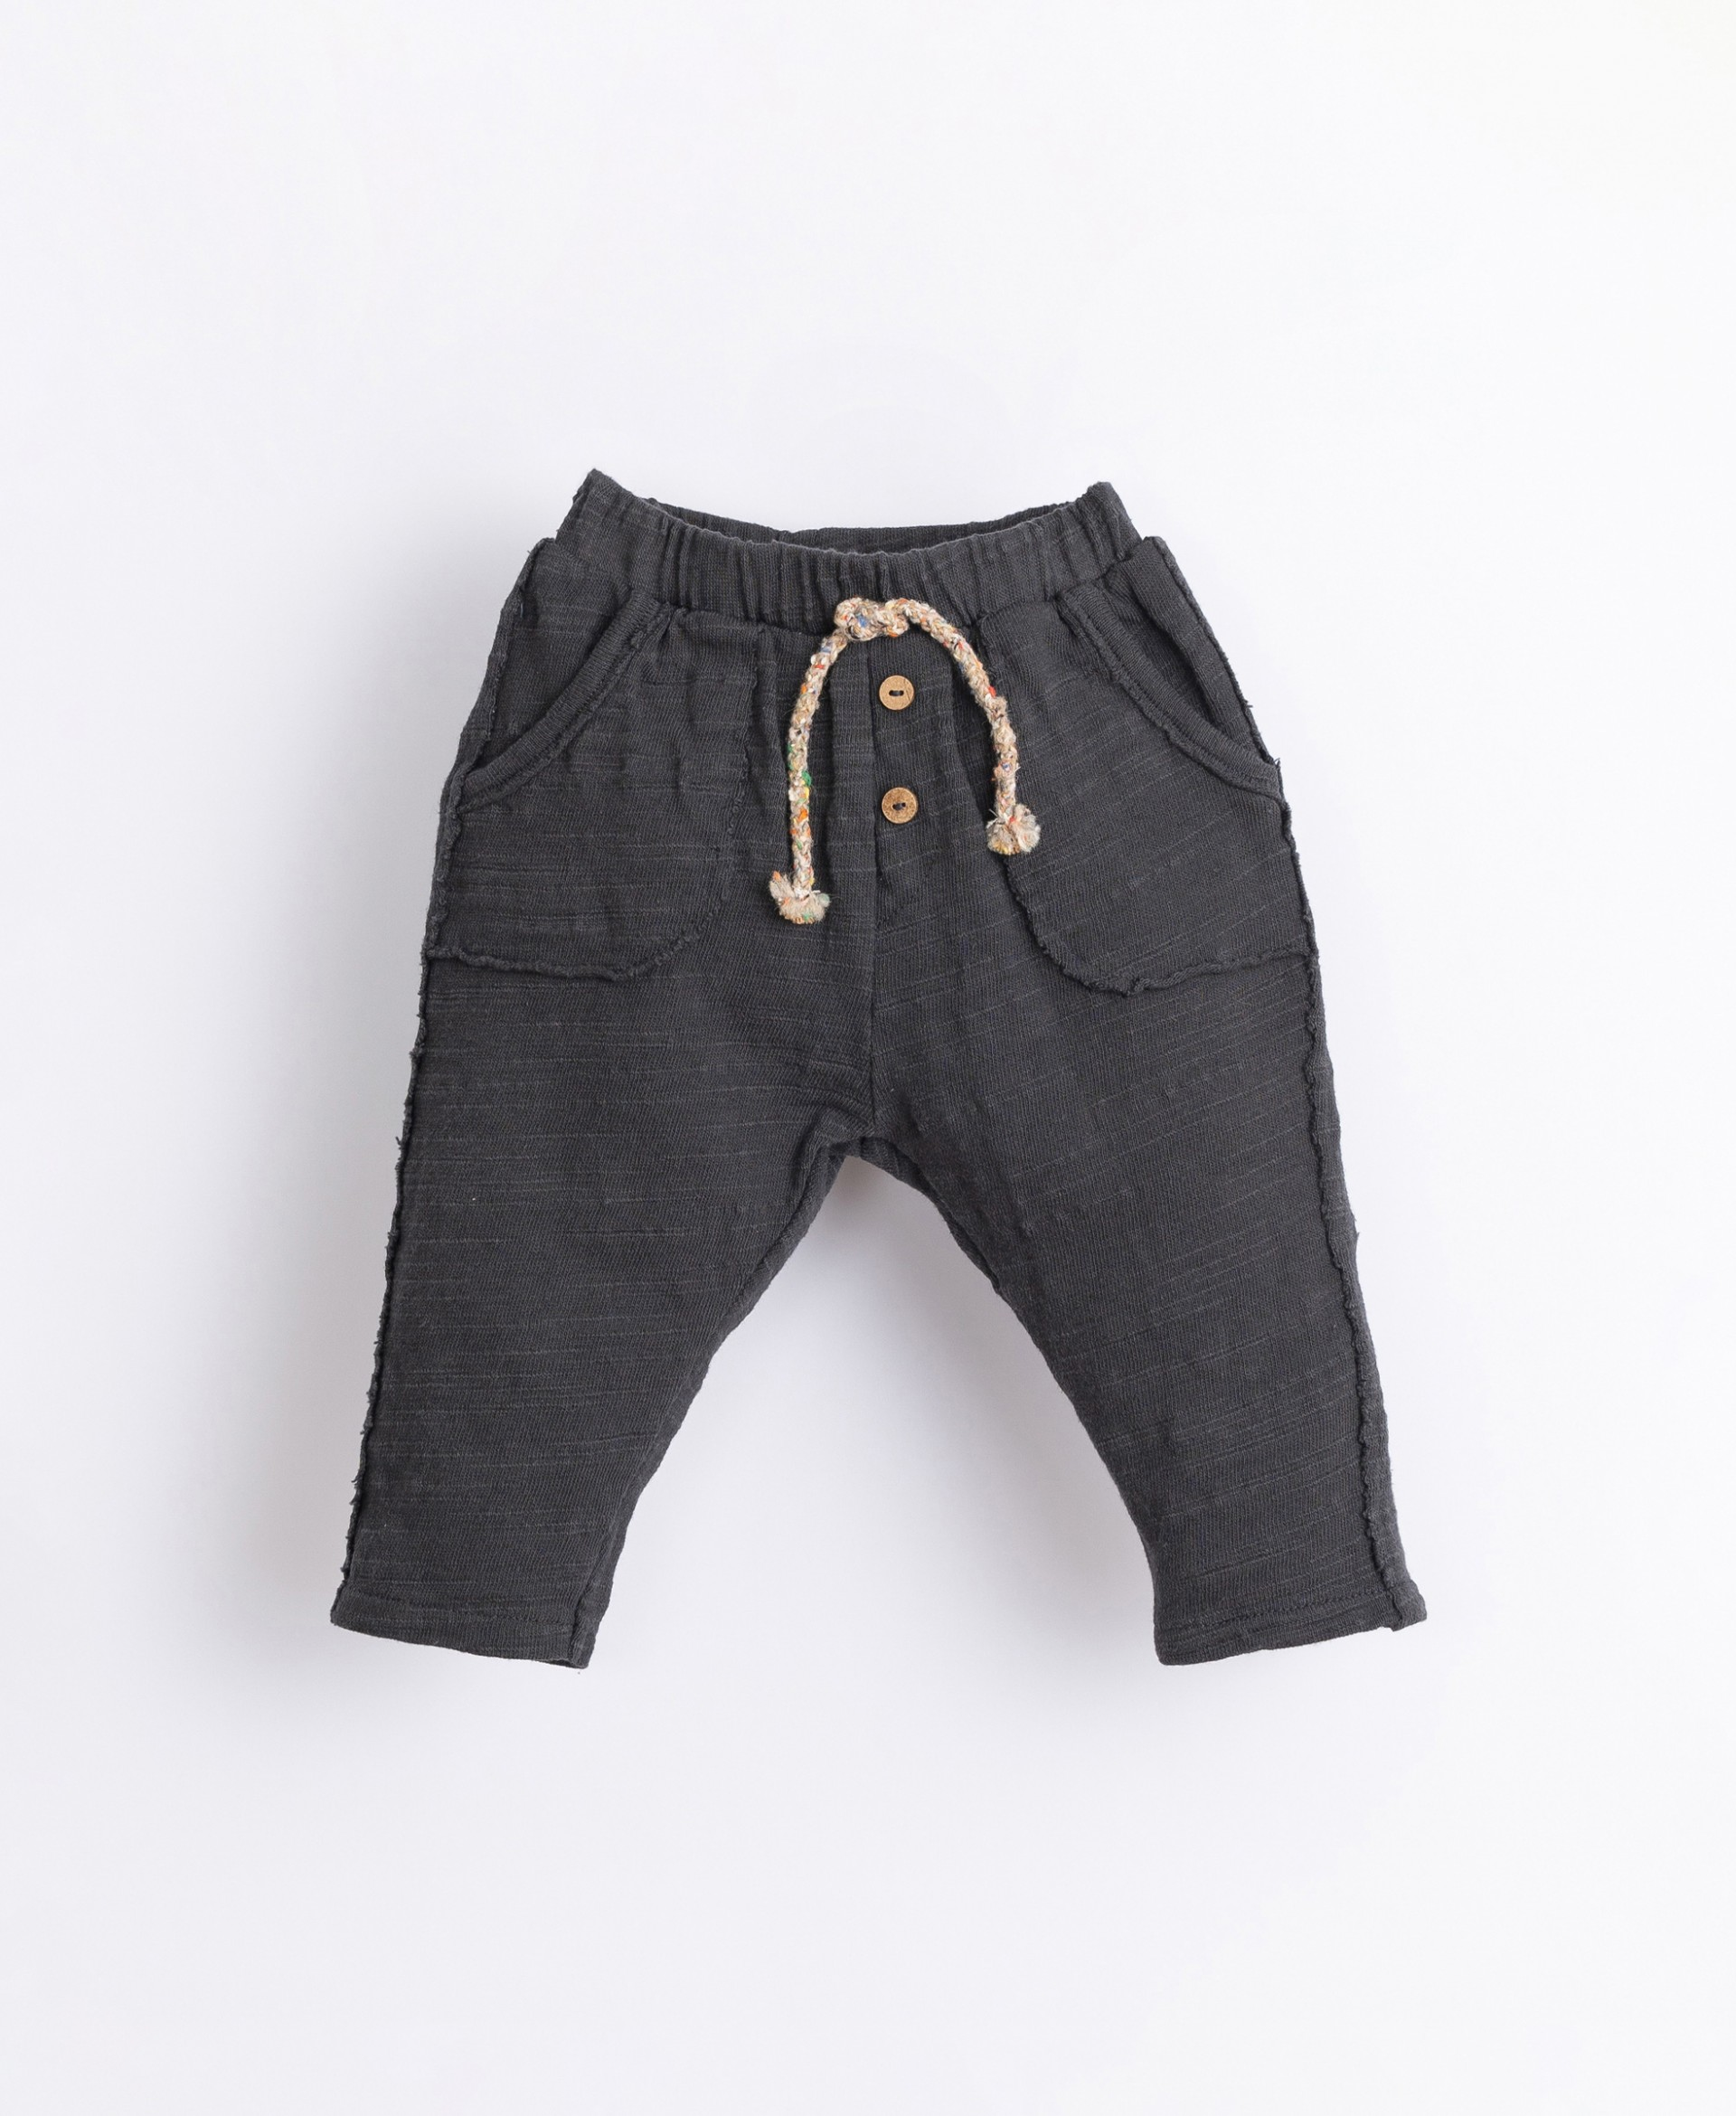 Trousers with decorative buttons | Illustration